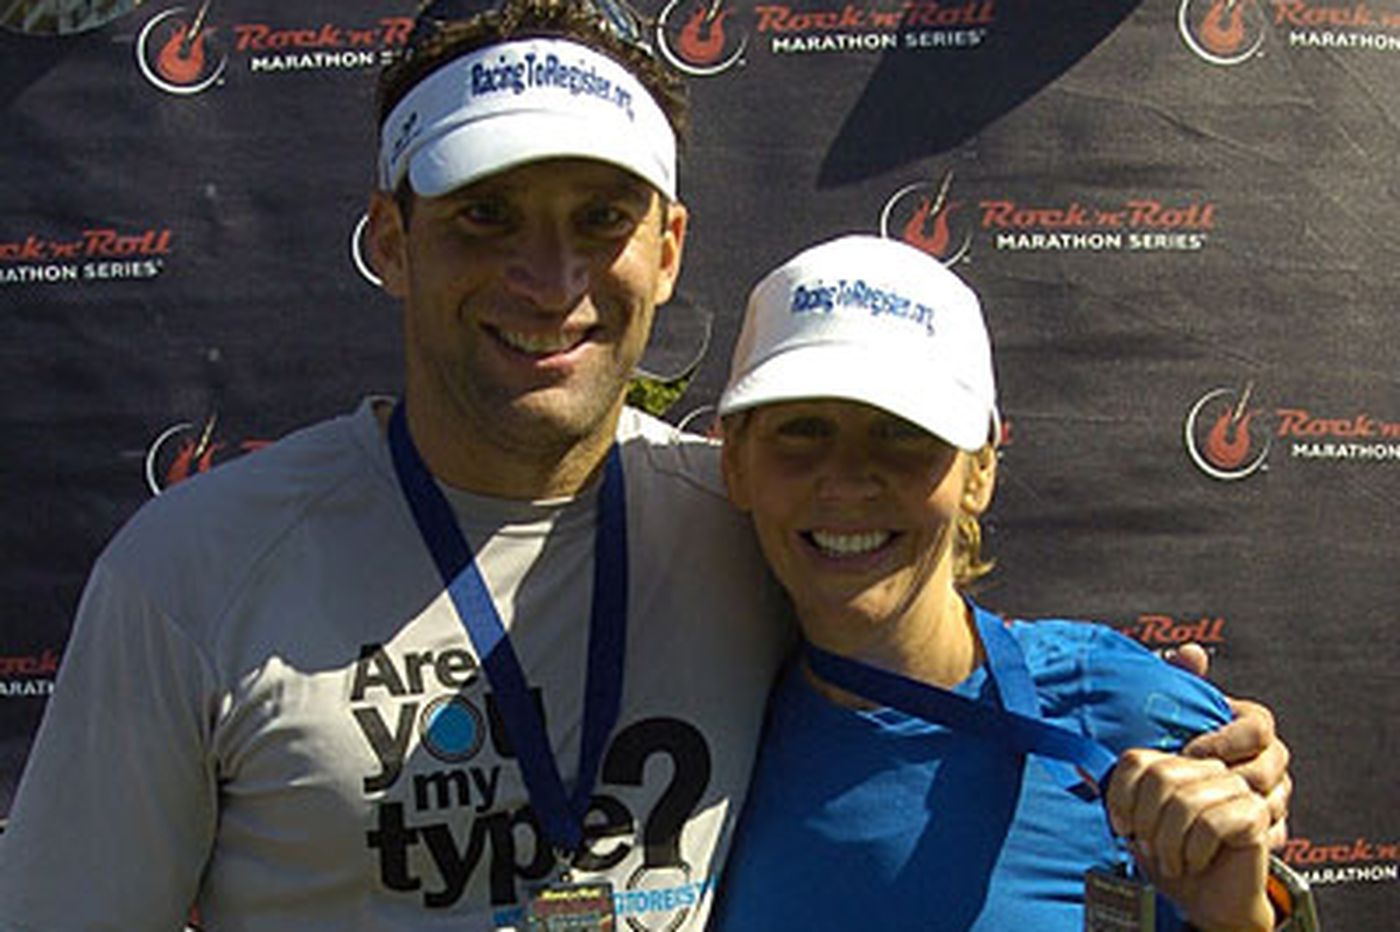 Couple are running Broad Street for life or death